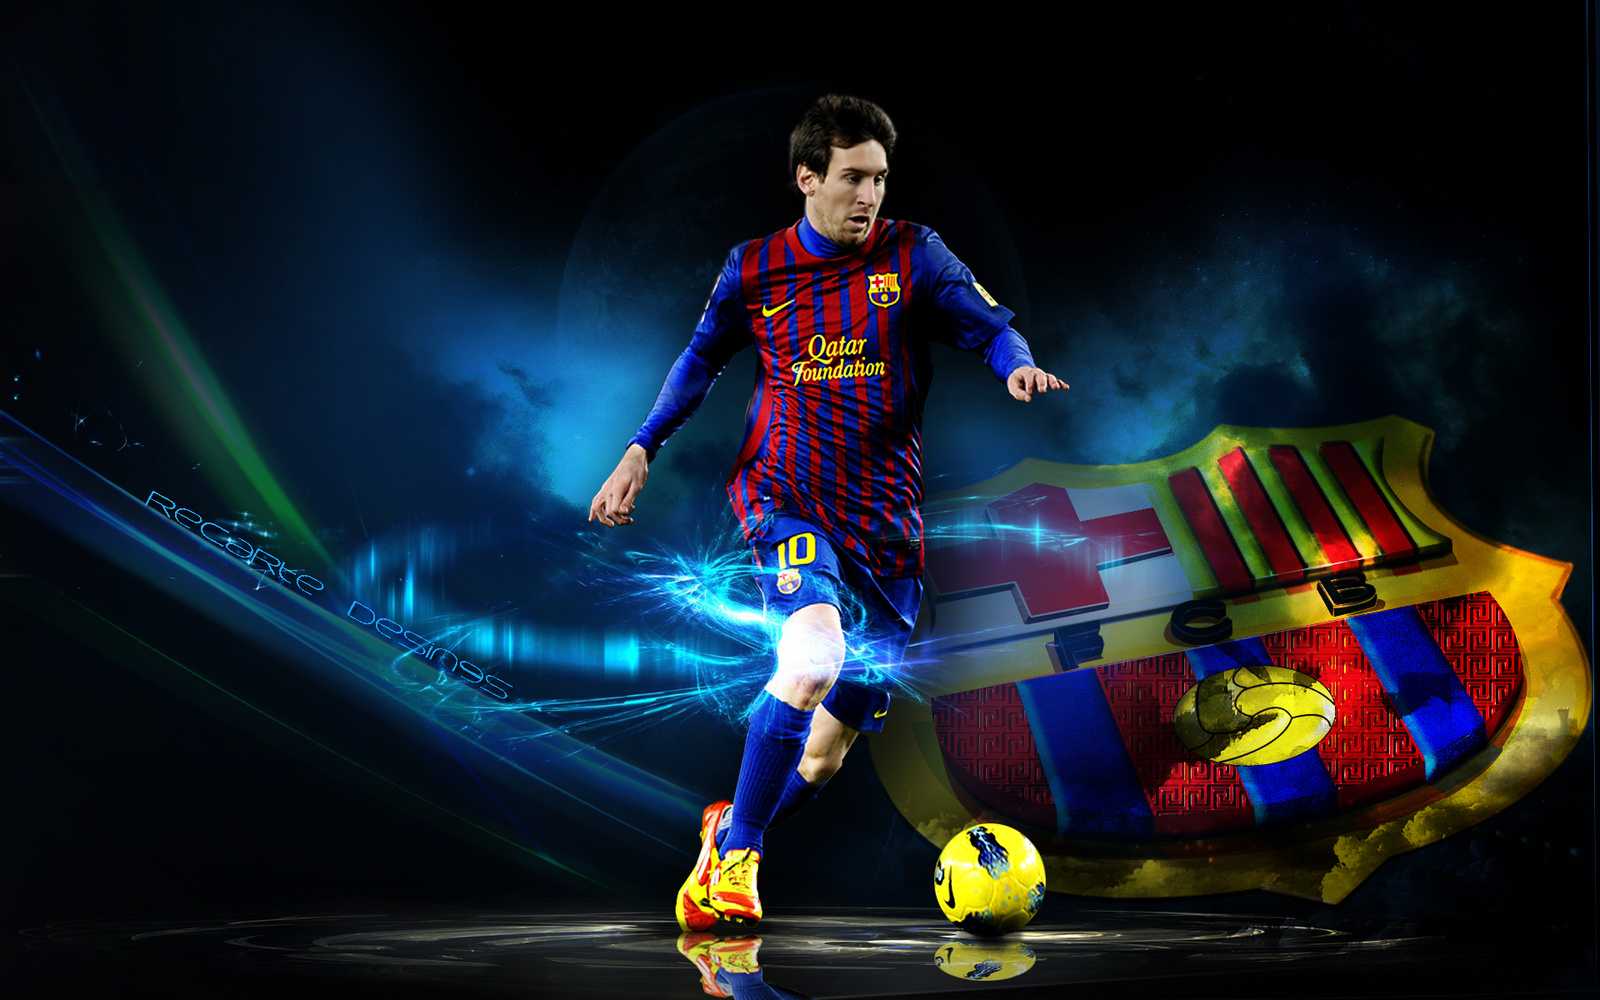 Wallpaper Messi Picture